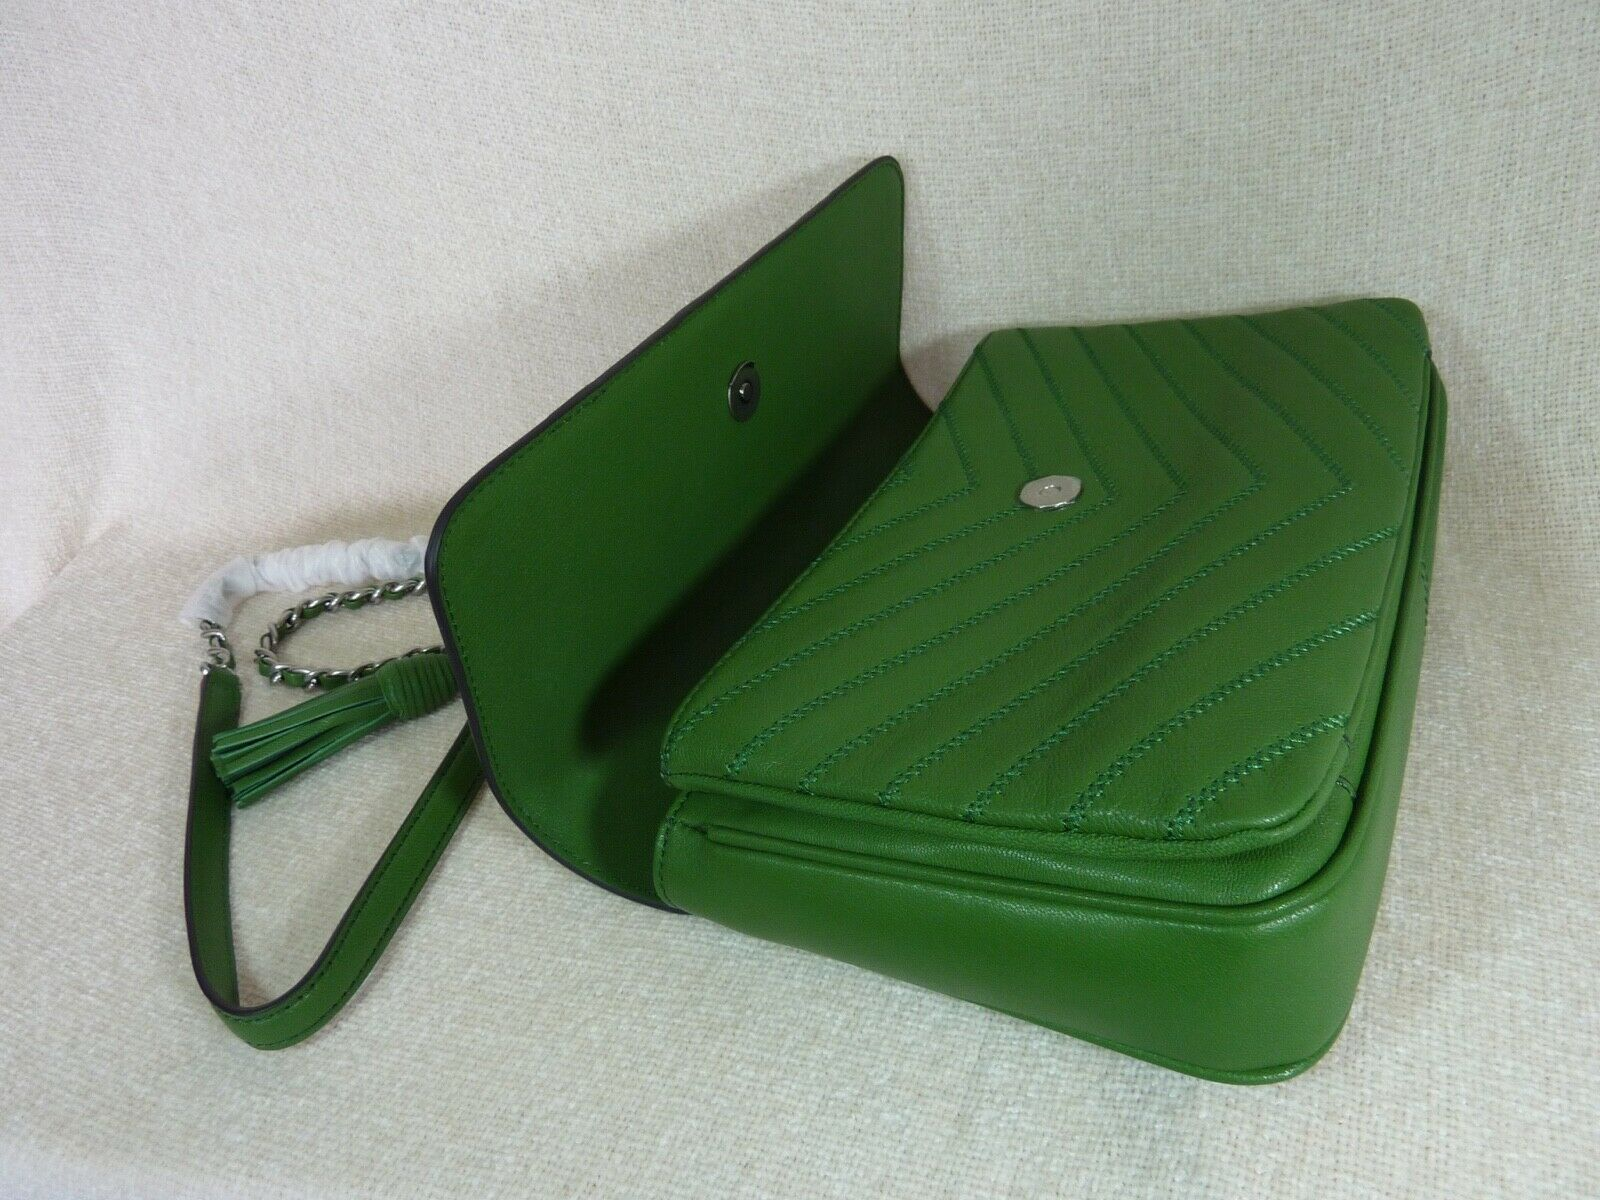 NWT Tory Burch Watercress Green Leather Fleming Convertible Shoulder Bag image 5